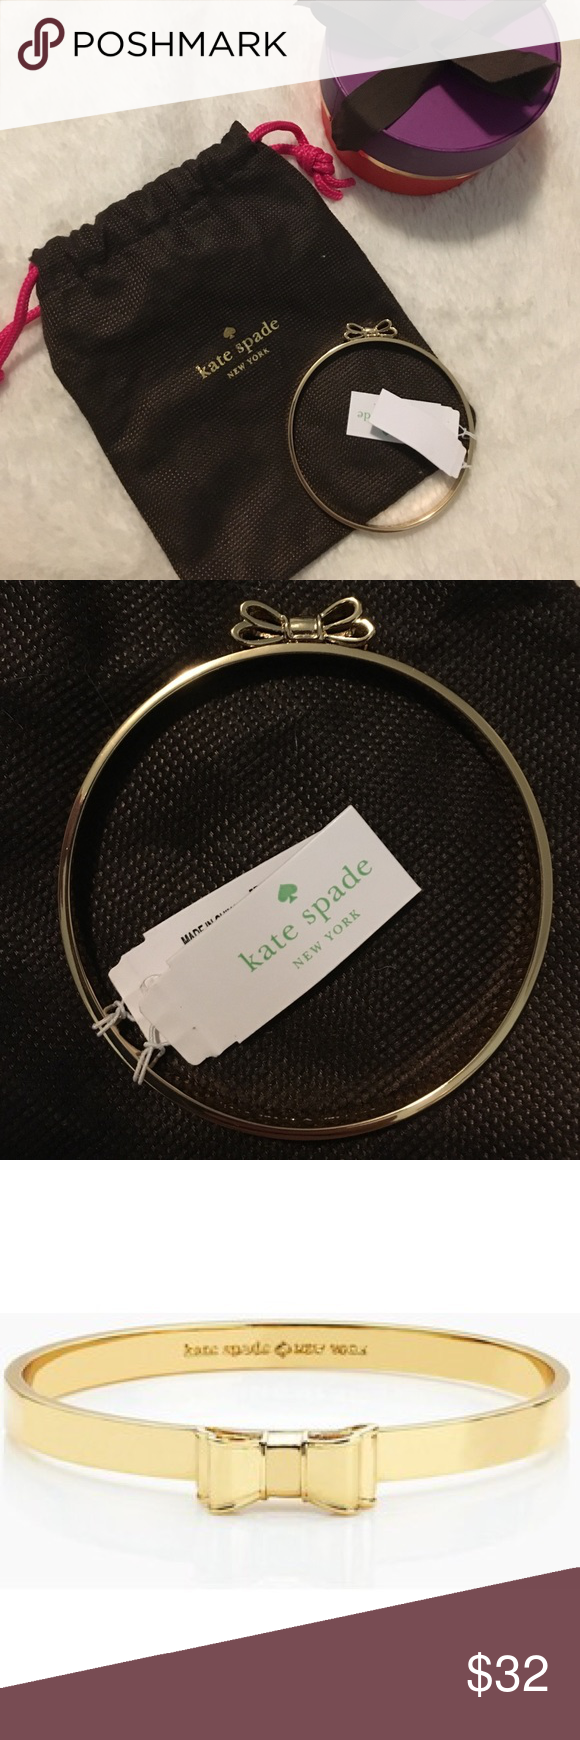 Kate Spade New York Bow bangle bracelet Brand new Kate Spade Gold Moon River bow bangle with dust bag and storage box. Perfect to add to your arm candy :) kate spade Jewelry Bracelets